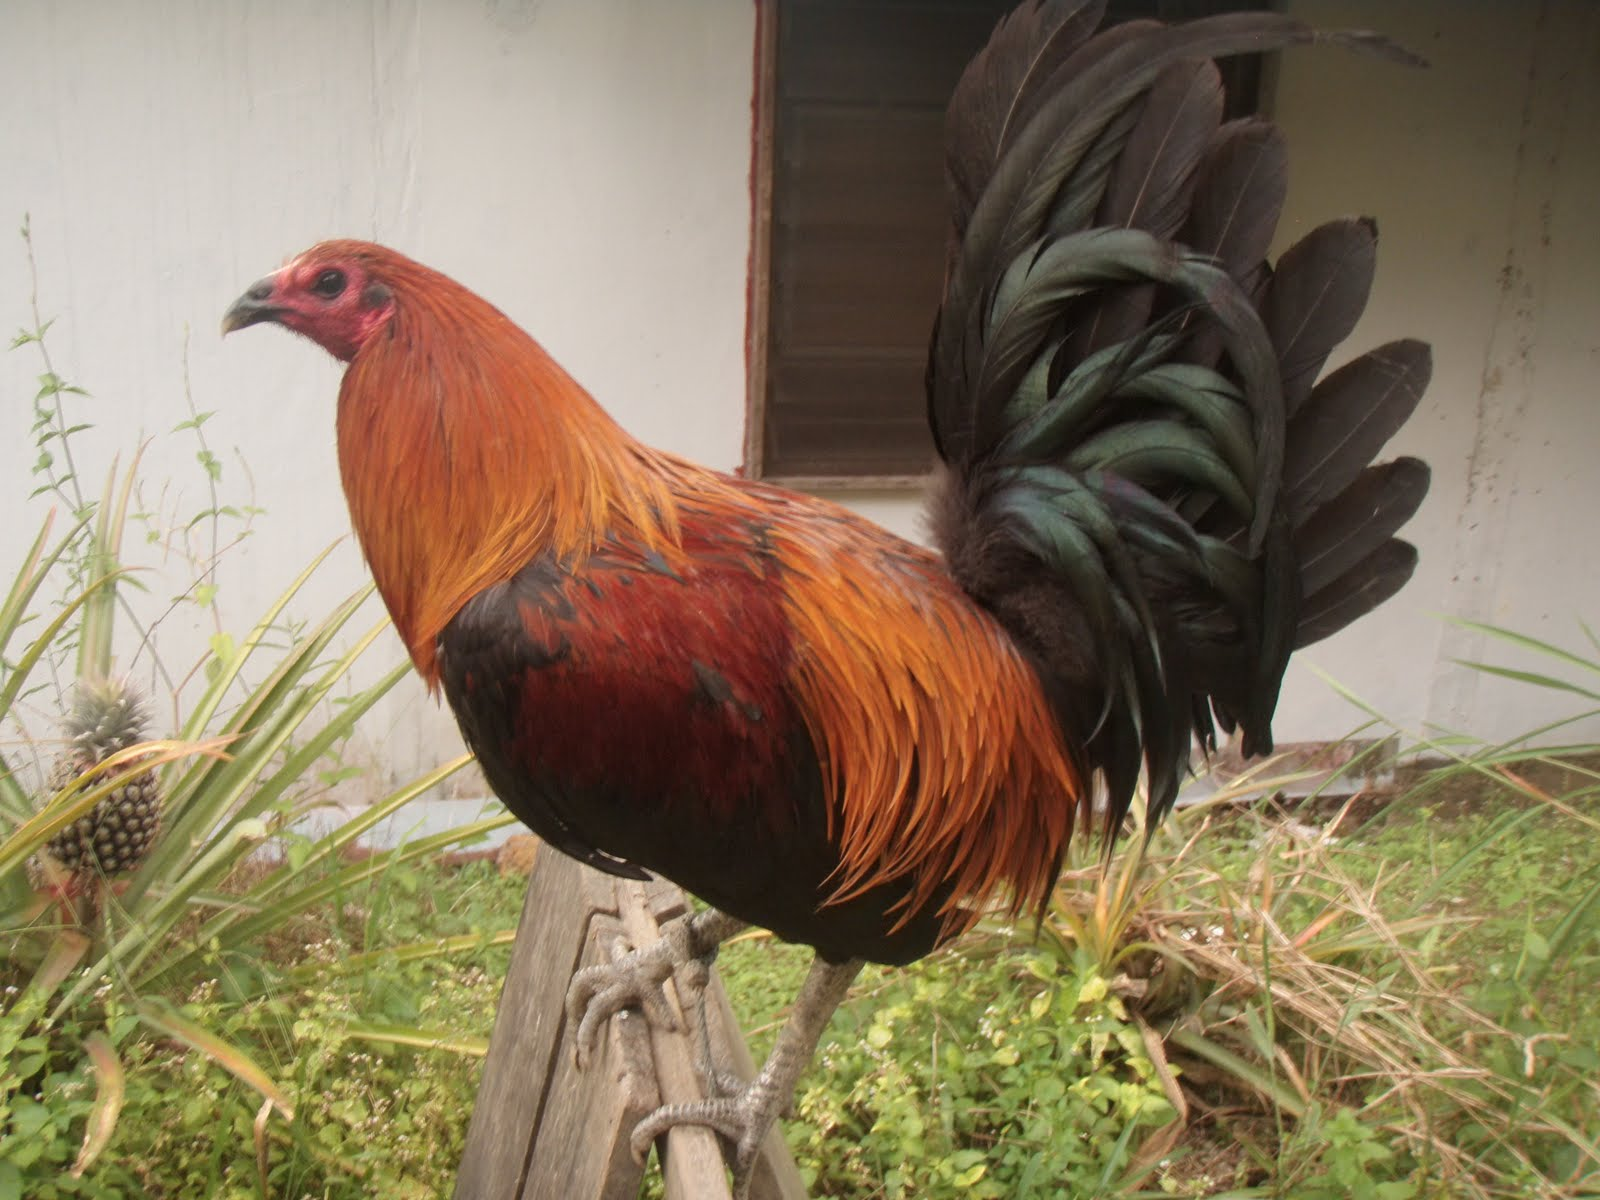 Brown Red Gamefowl Farm http://manoksabong-mark.blogspot.com/2011/08/enkechong-dark-red-mark.html